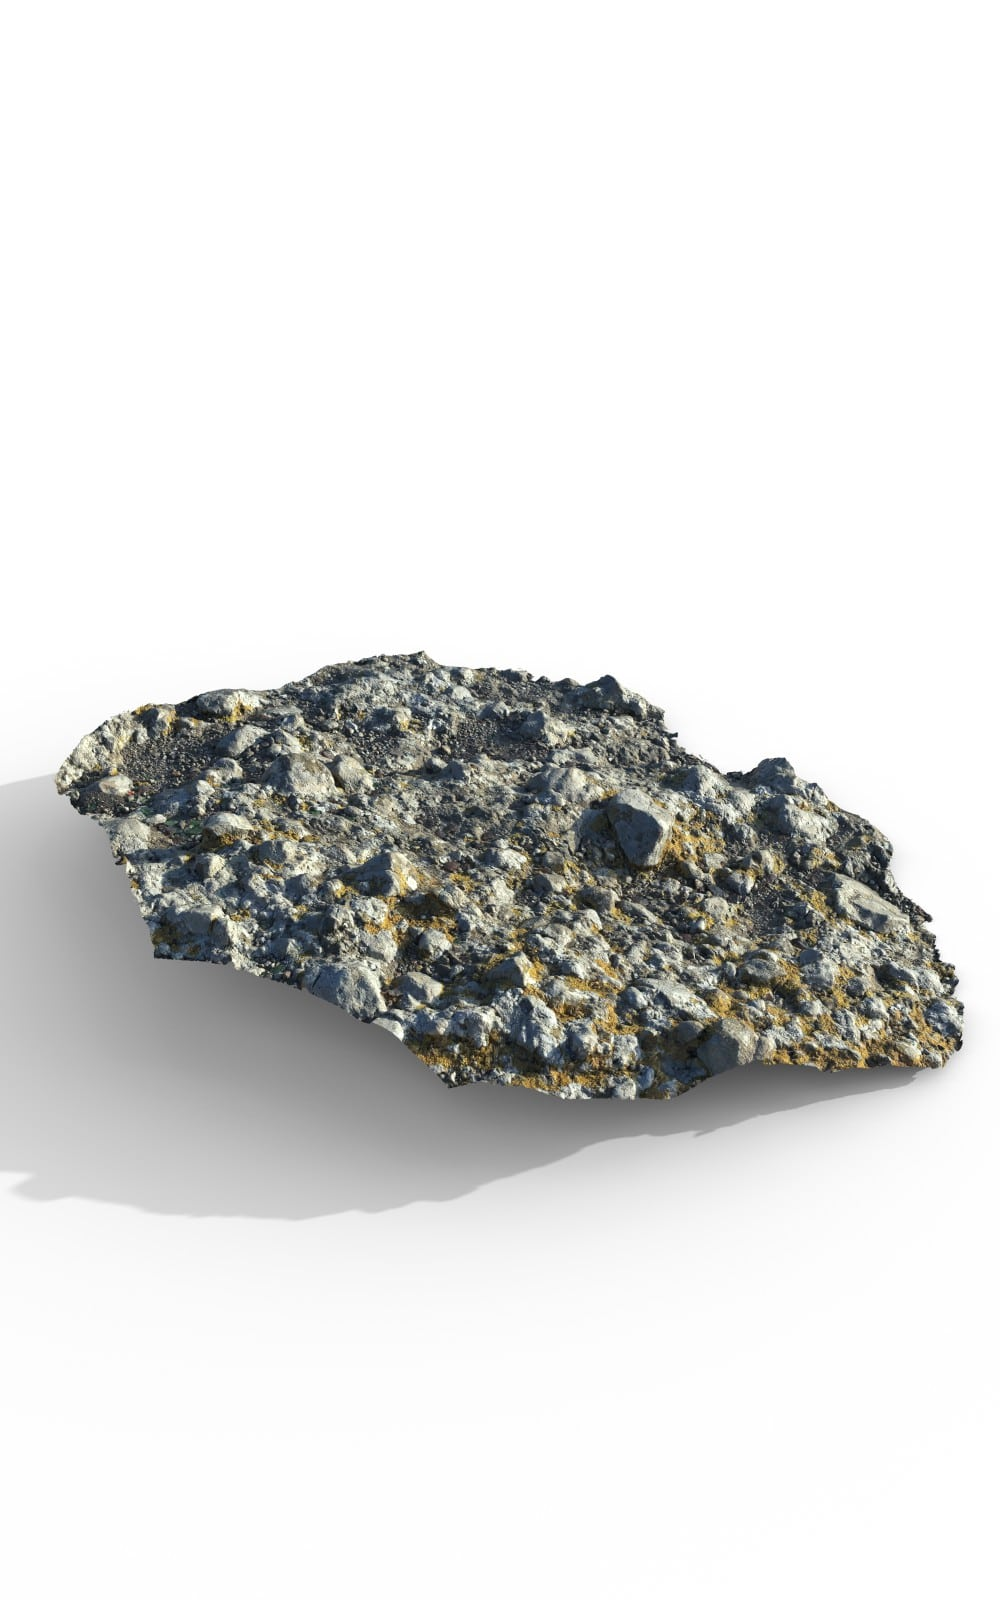 Natural Ground Rock Premium 3D Model - image 2